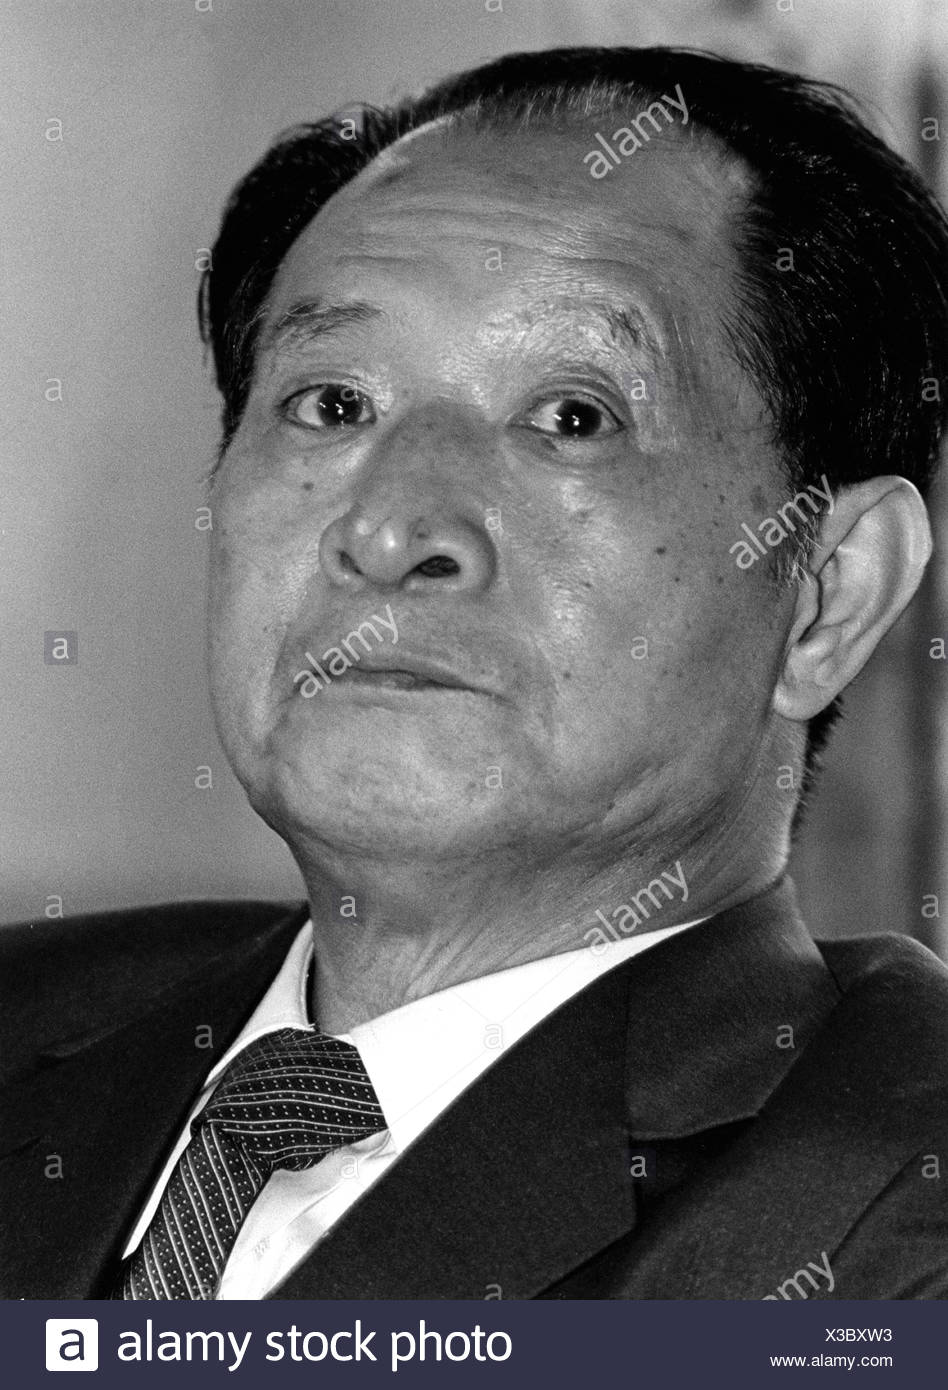 Hu Yaobang, 20.11.1915 - 15.4.1989, Chinese poltitician, 1980 - 1987 Premier of the State Council, portrait, state visit Germany, Munich, 14.6.1986, Additional-Rights-Clearances-NA - Stock Image